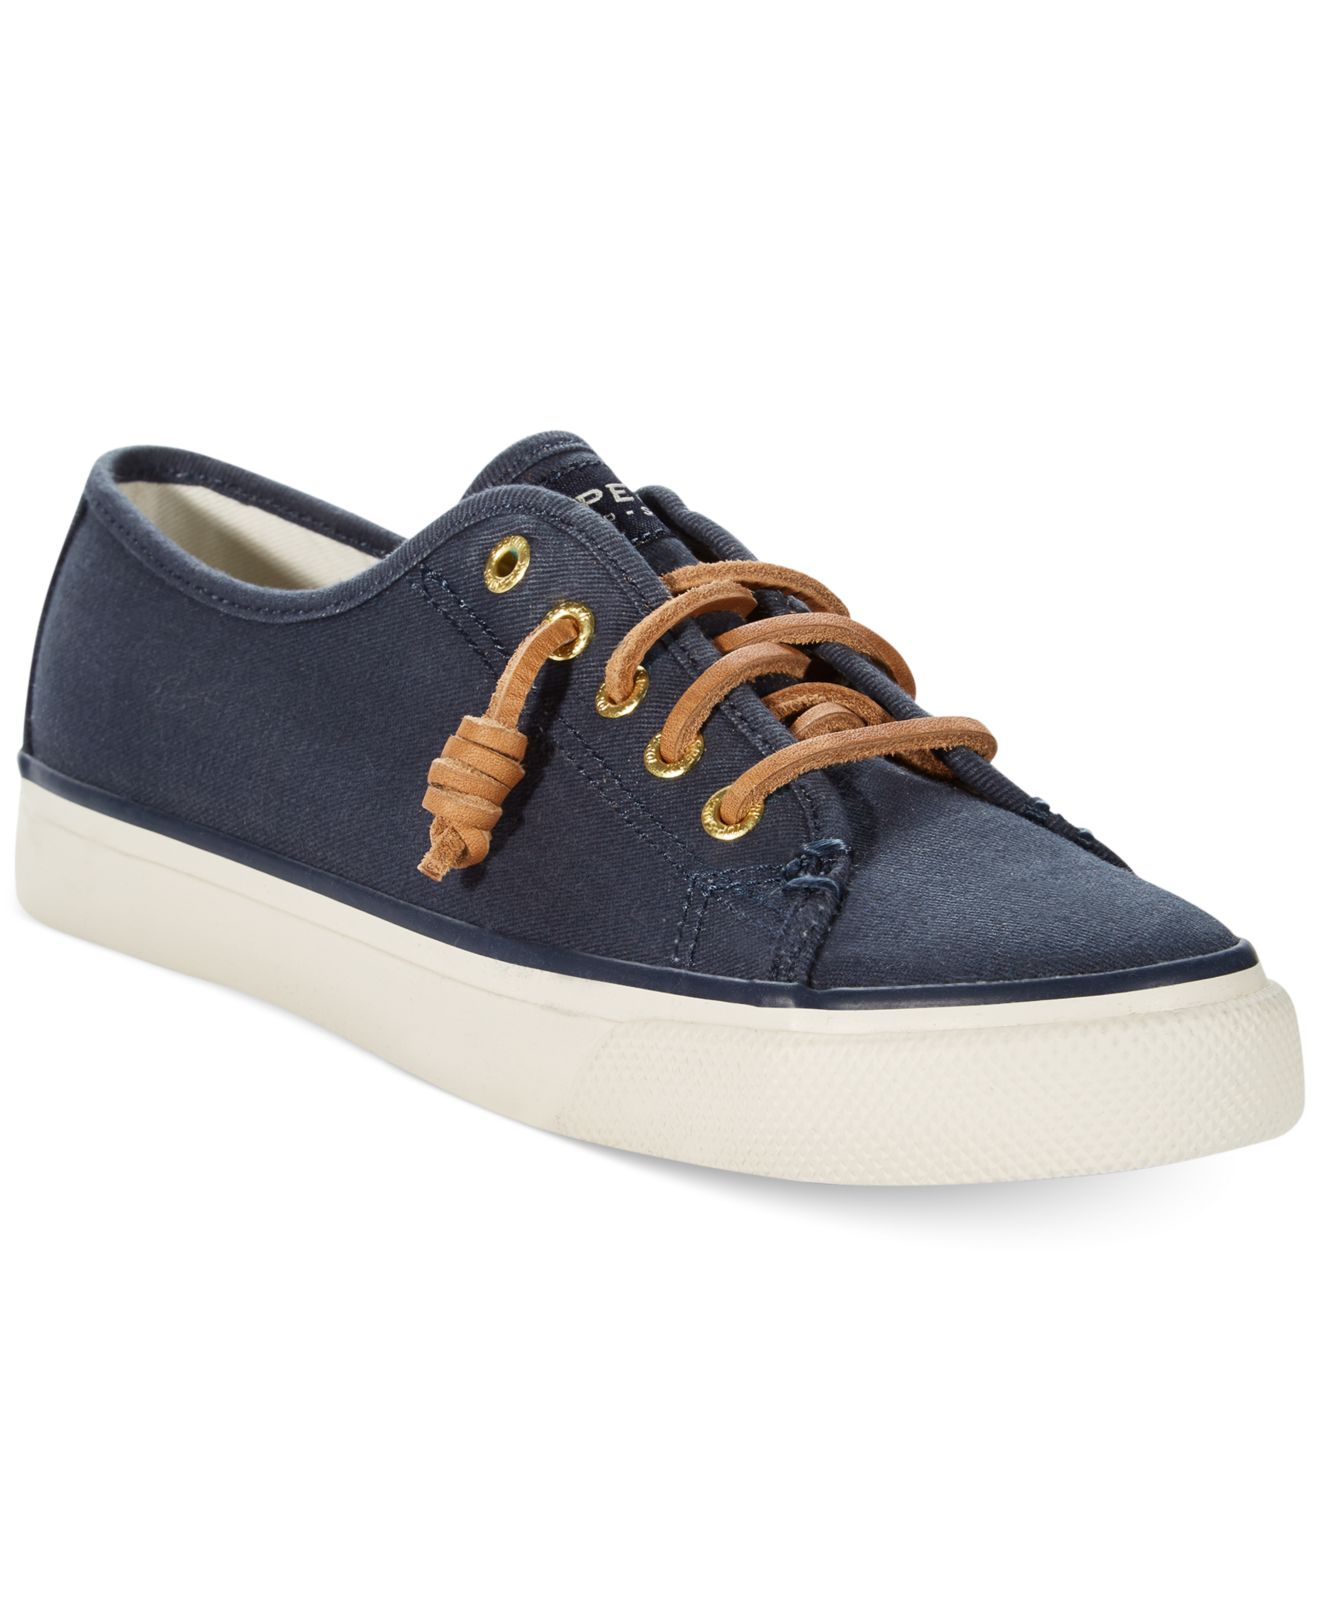 Sperry Canvas Boots Womens Shoes